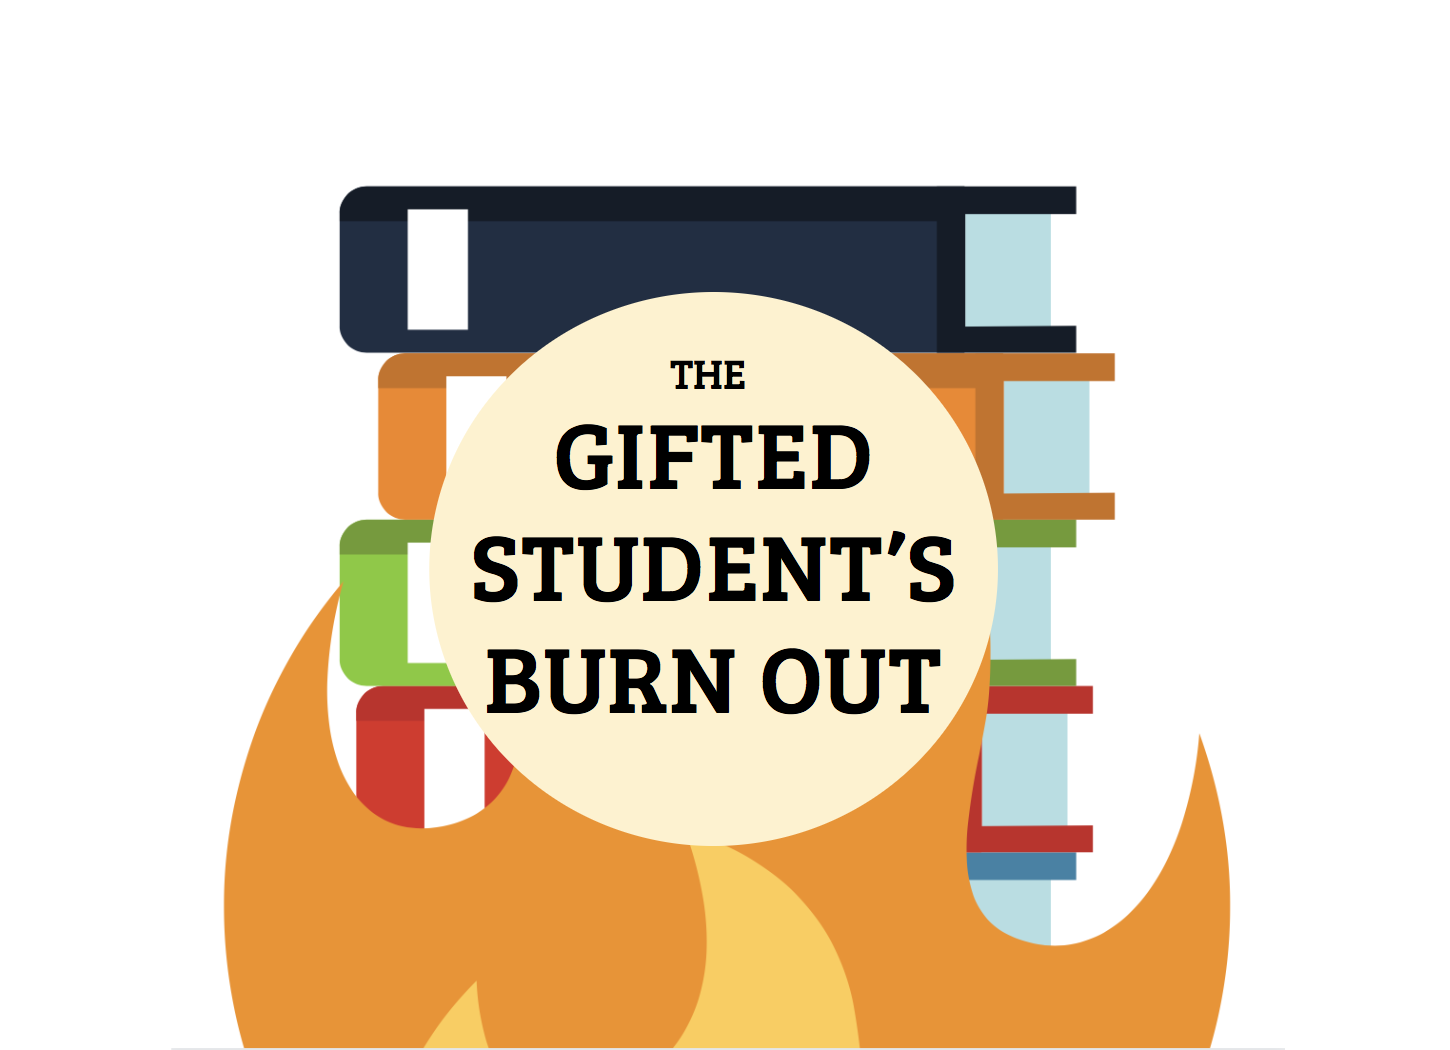 As a result of gifted programs in elementary school, highschool and even college students struggle to live up to what they have been labeled. Gifted students were assessed as early as kindergarten in order to put them into more advanced classes to help them learn at a faster pace.